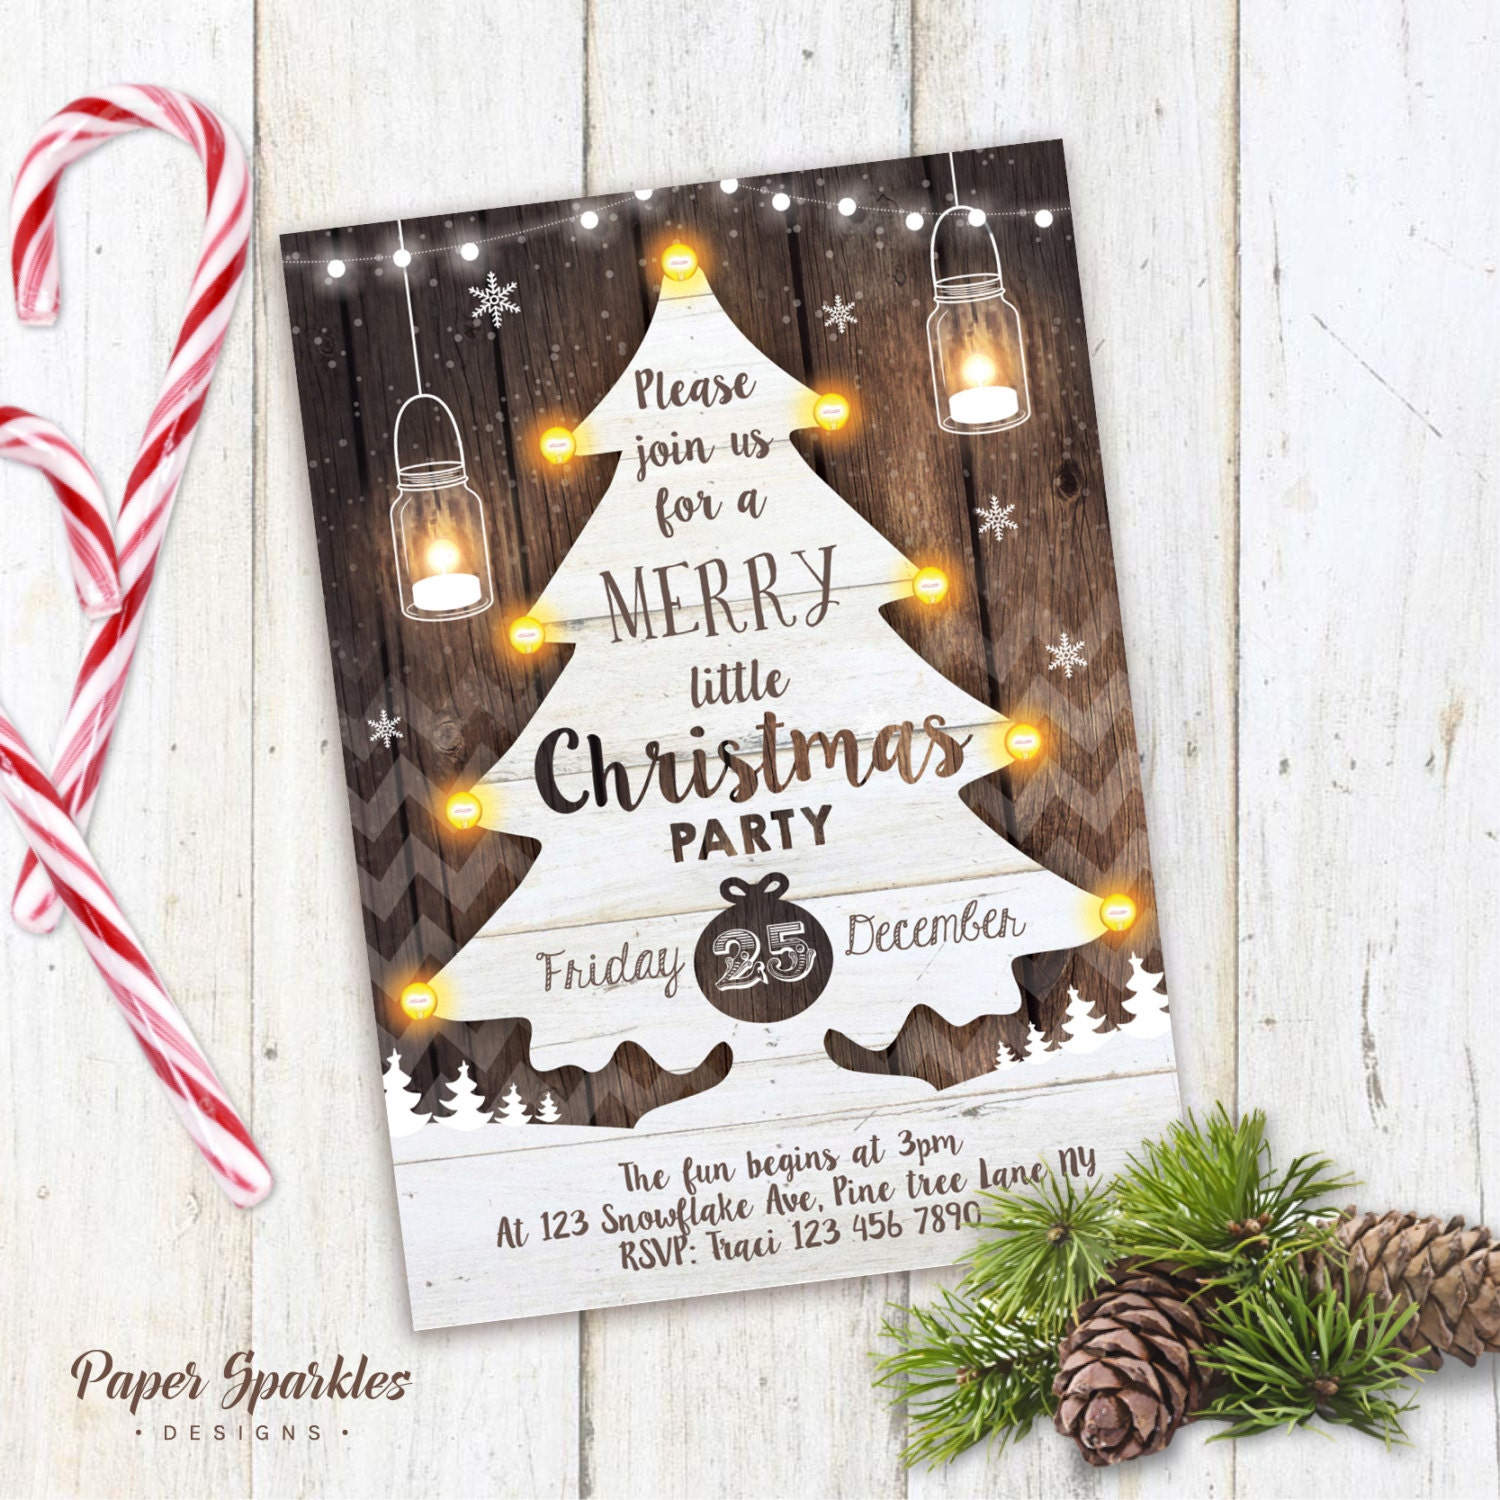 Christmas Holiday Party: Christmas Party Invitation Rustic Christmas Invite Mason Jar